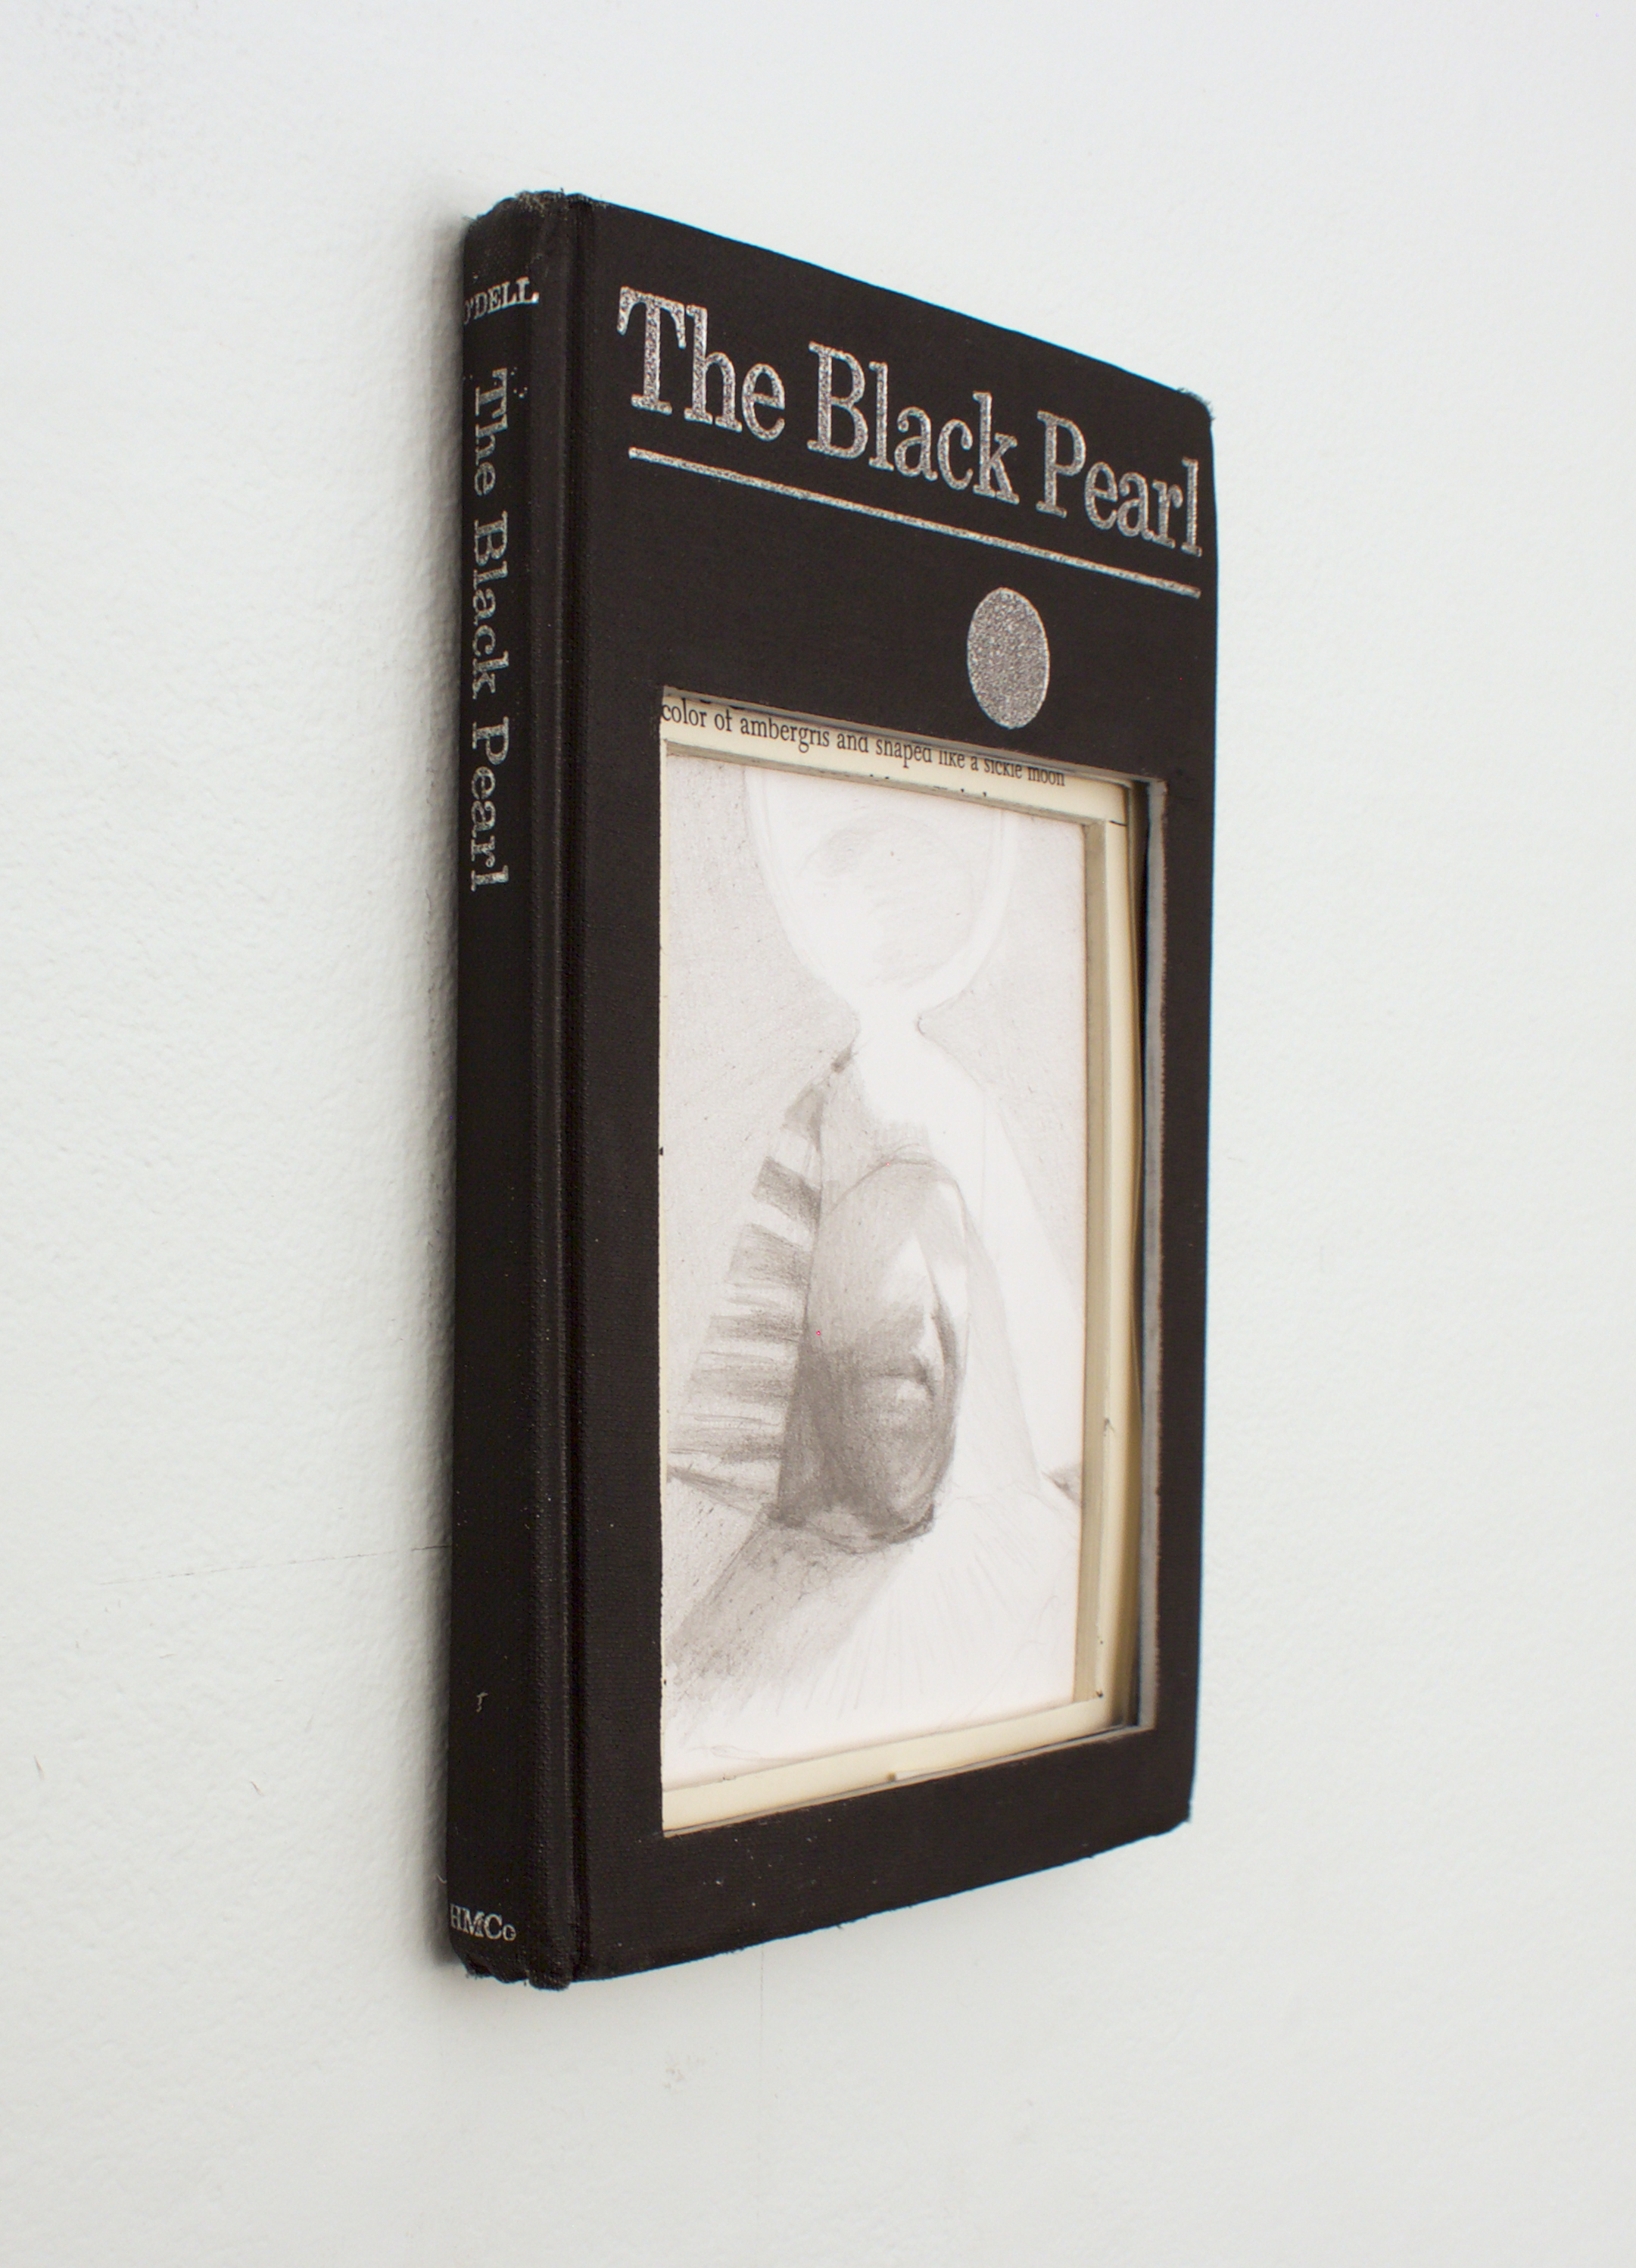 TheBlackPearl (side).jpg